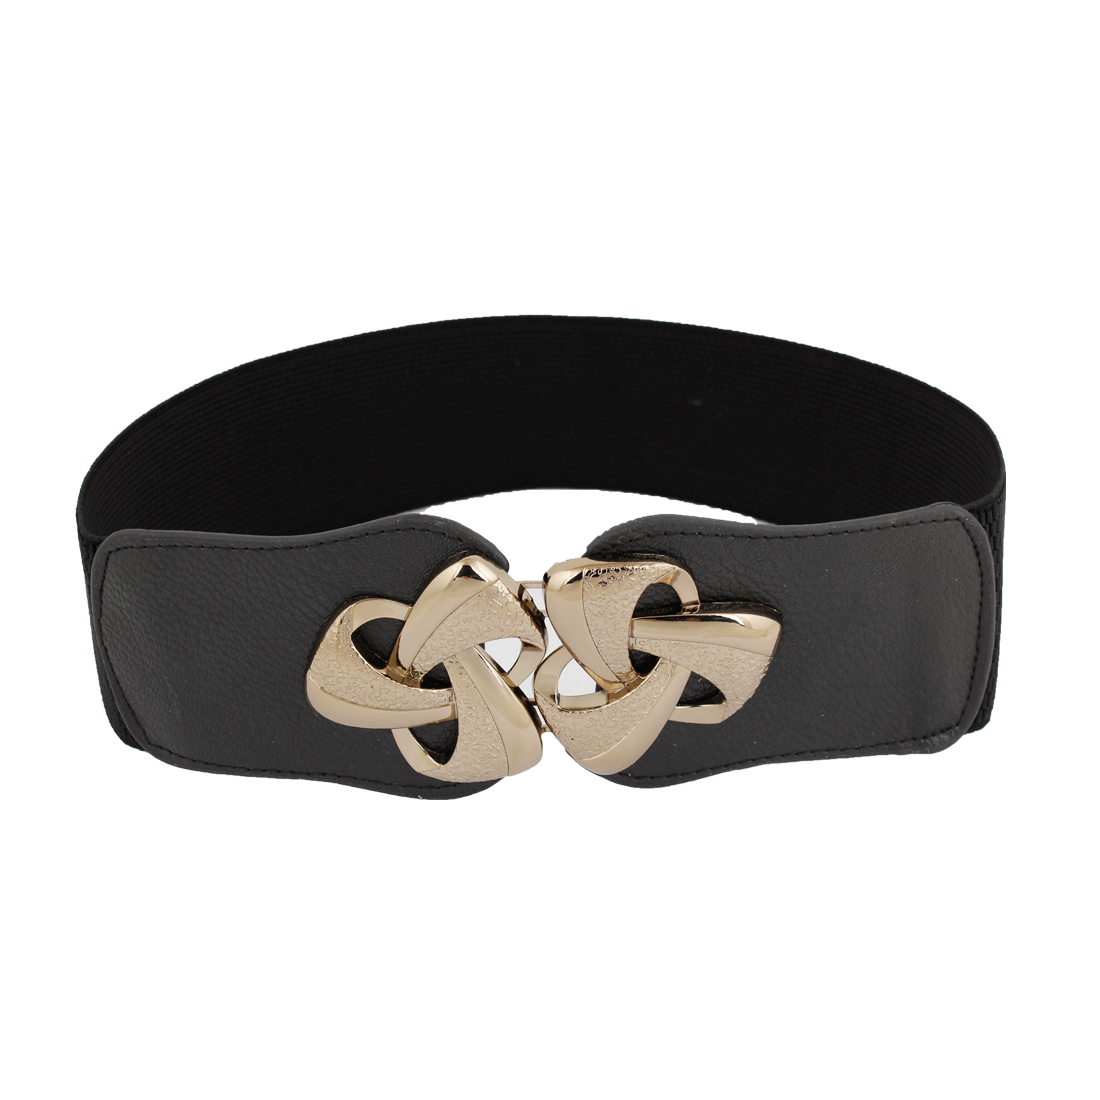 Lady Gold Tone Flower Decor Interlocking Buckle Elastic Belt Black